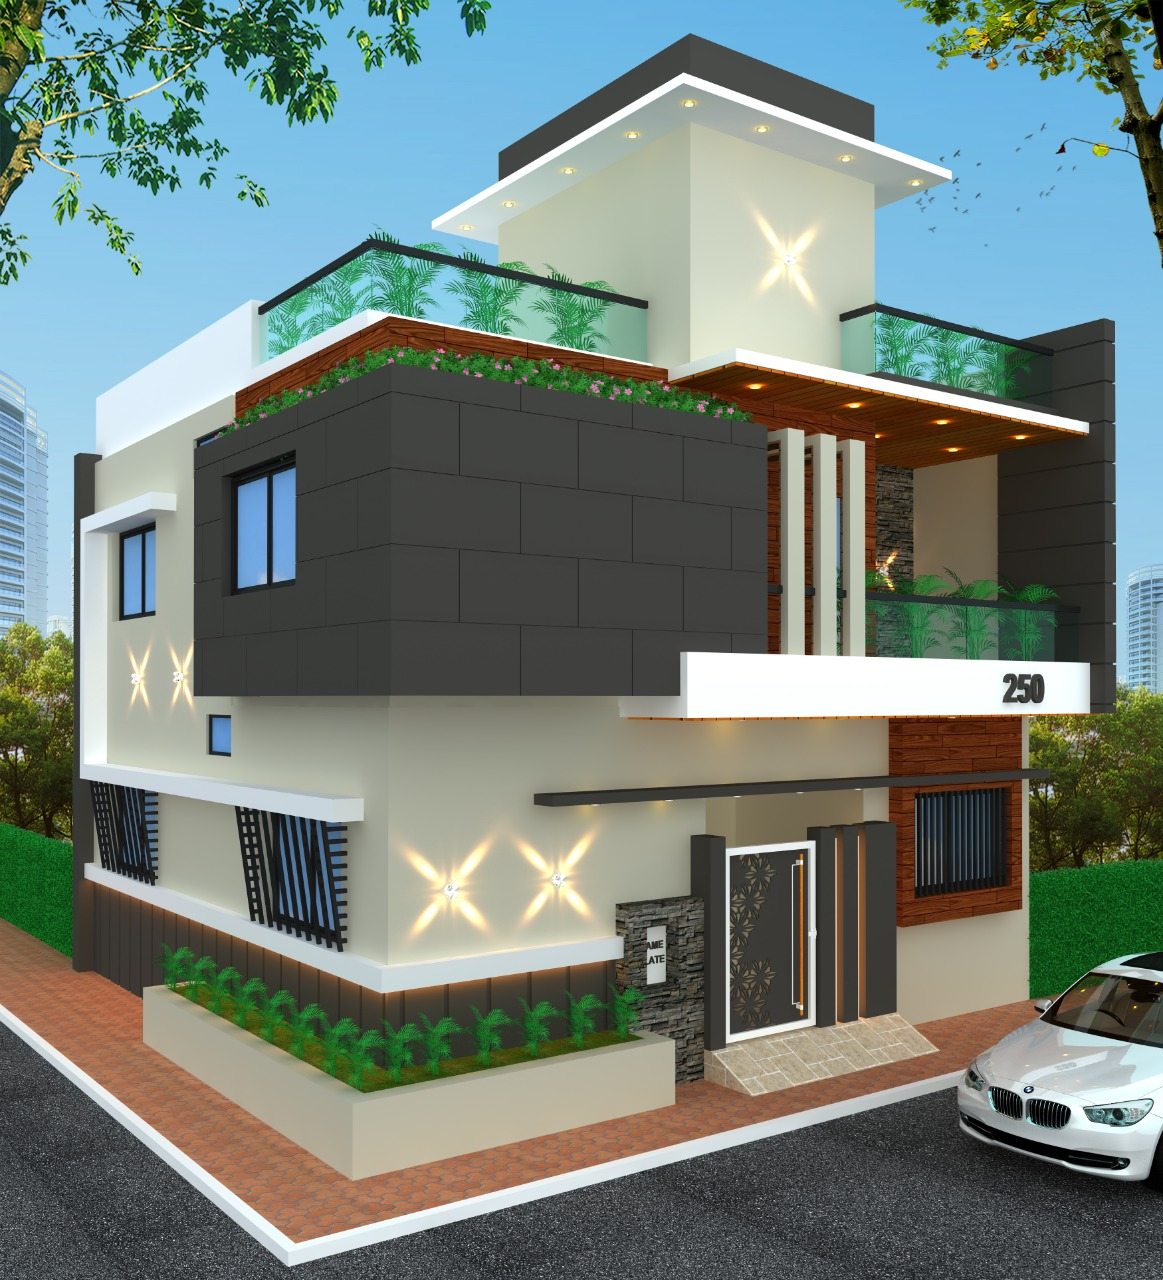 design-centre-institute-of-crativity-and-innovation-student-work-civil-and-interior-deignhouse-design-in-autocad-and-3dsmax-by-shubham